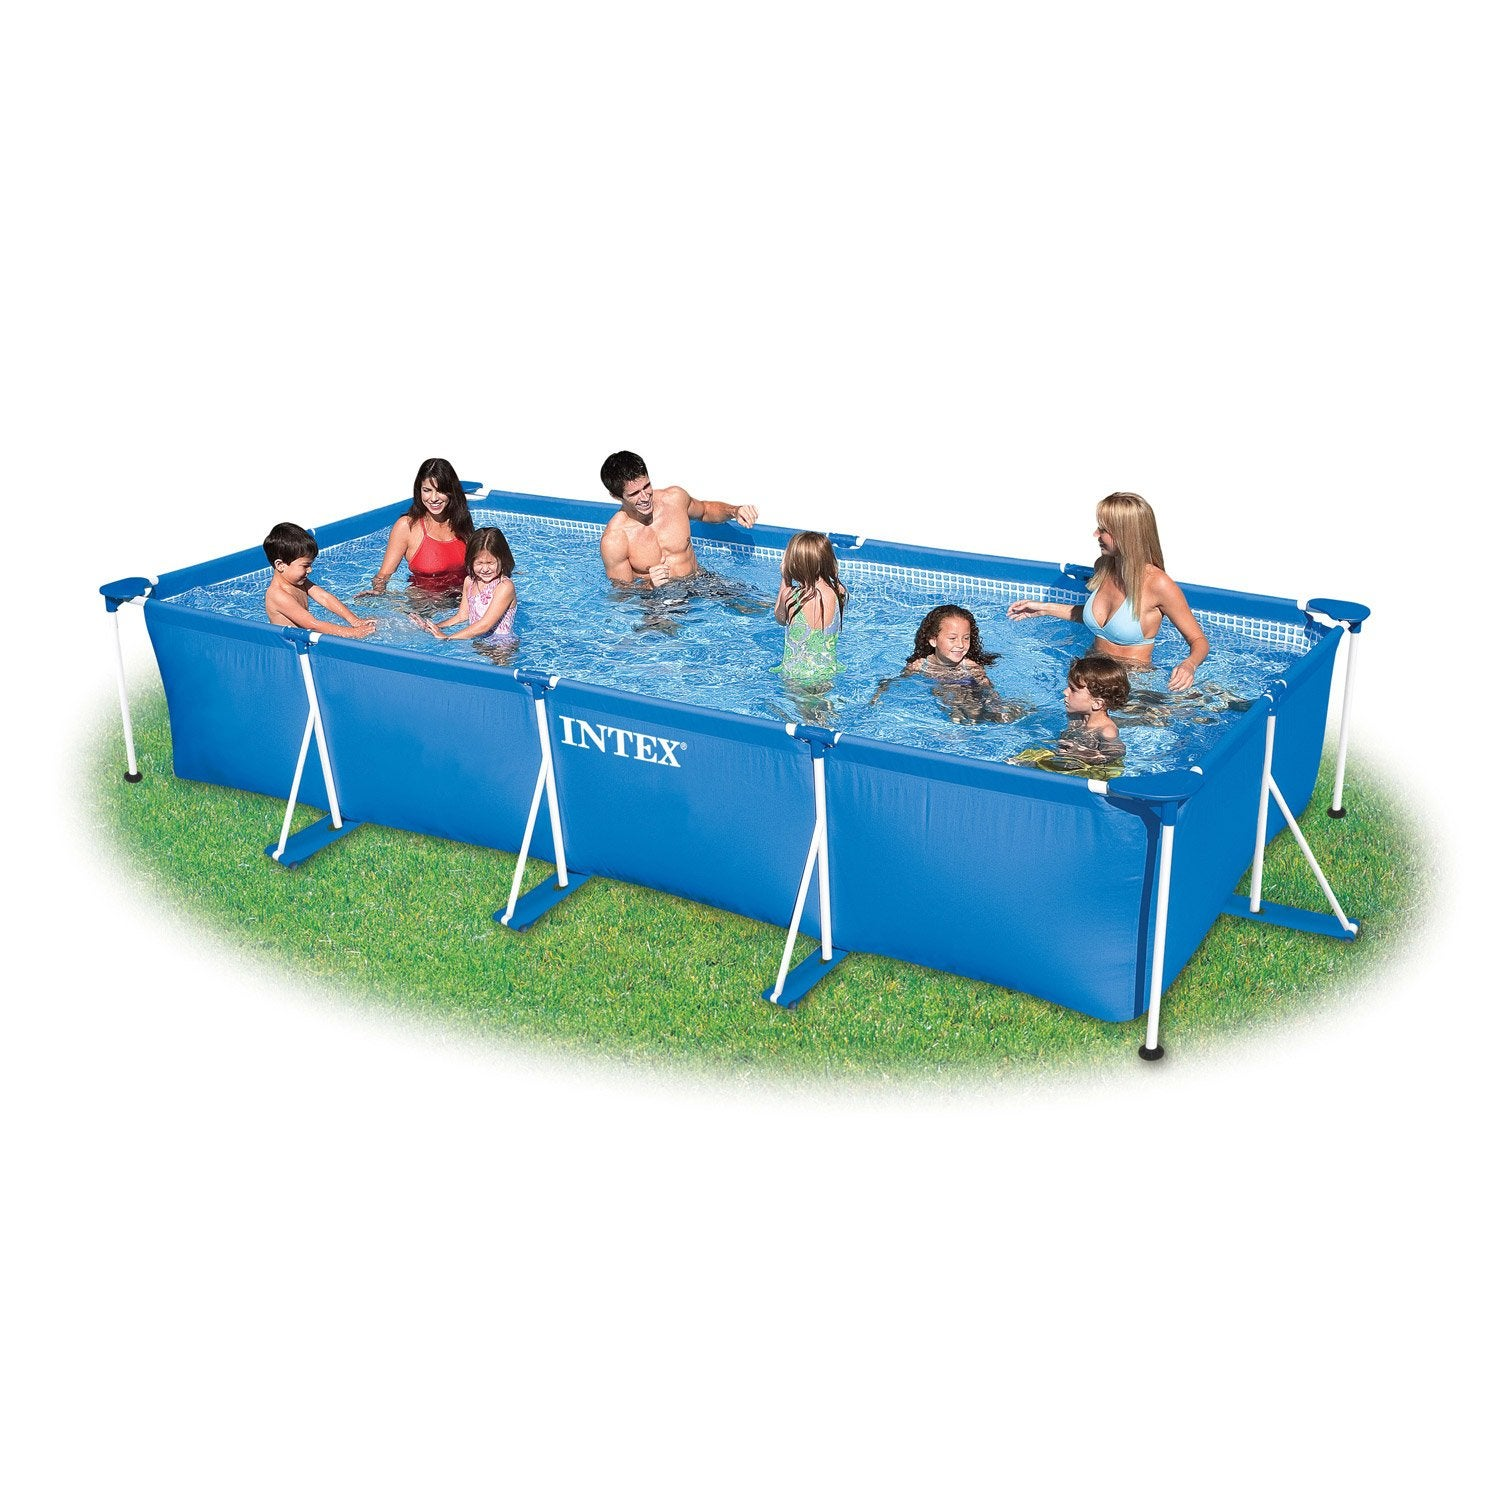 Piscine hors sol autoportante tubulaire intex l x l for Piscine intex